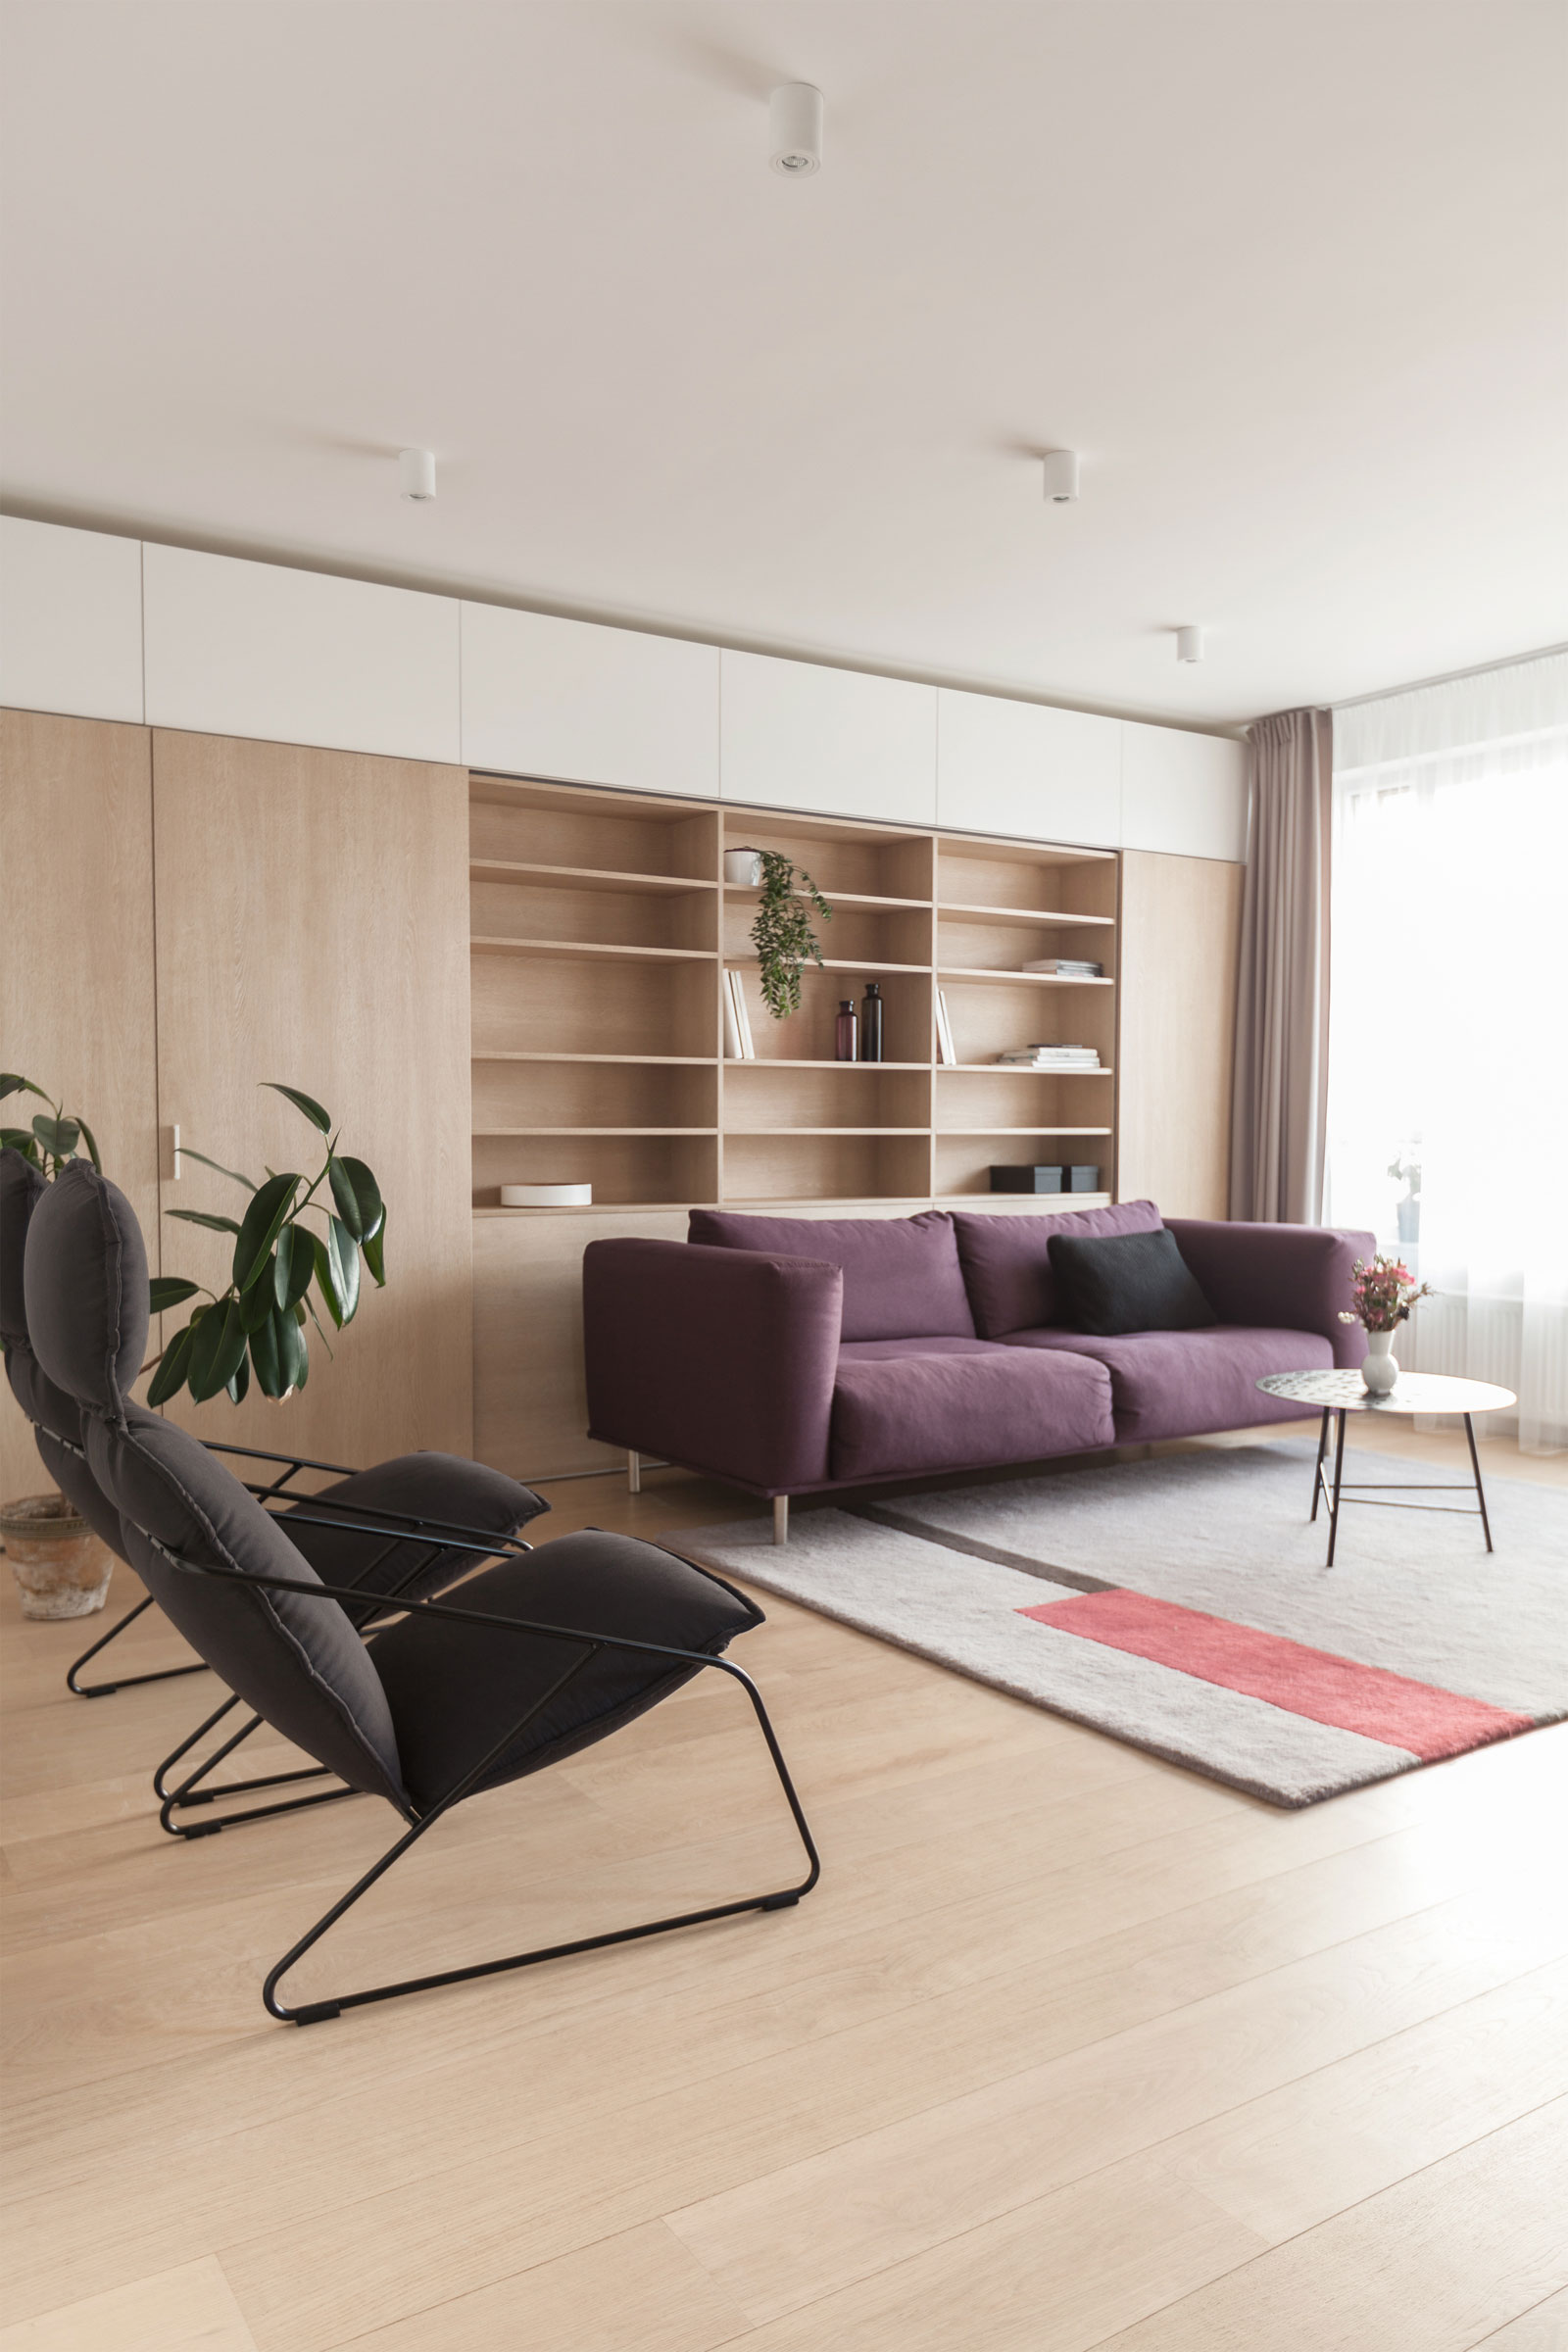 Apartment-in-Vilnius-2-02